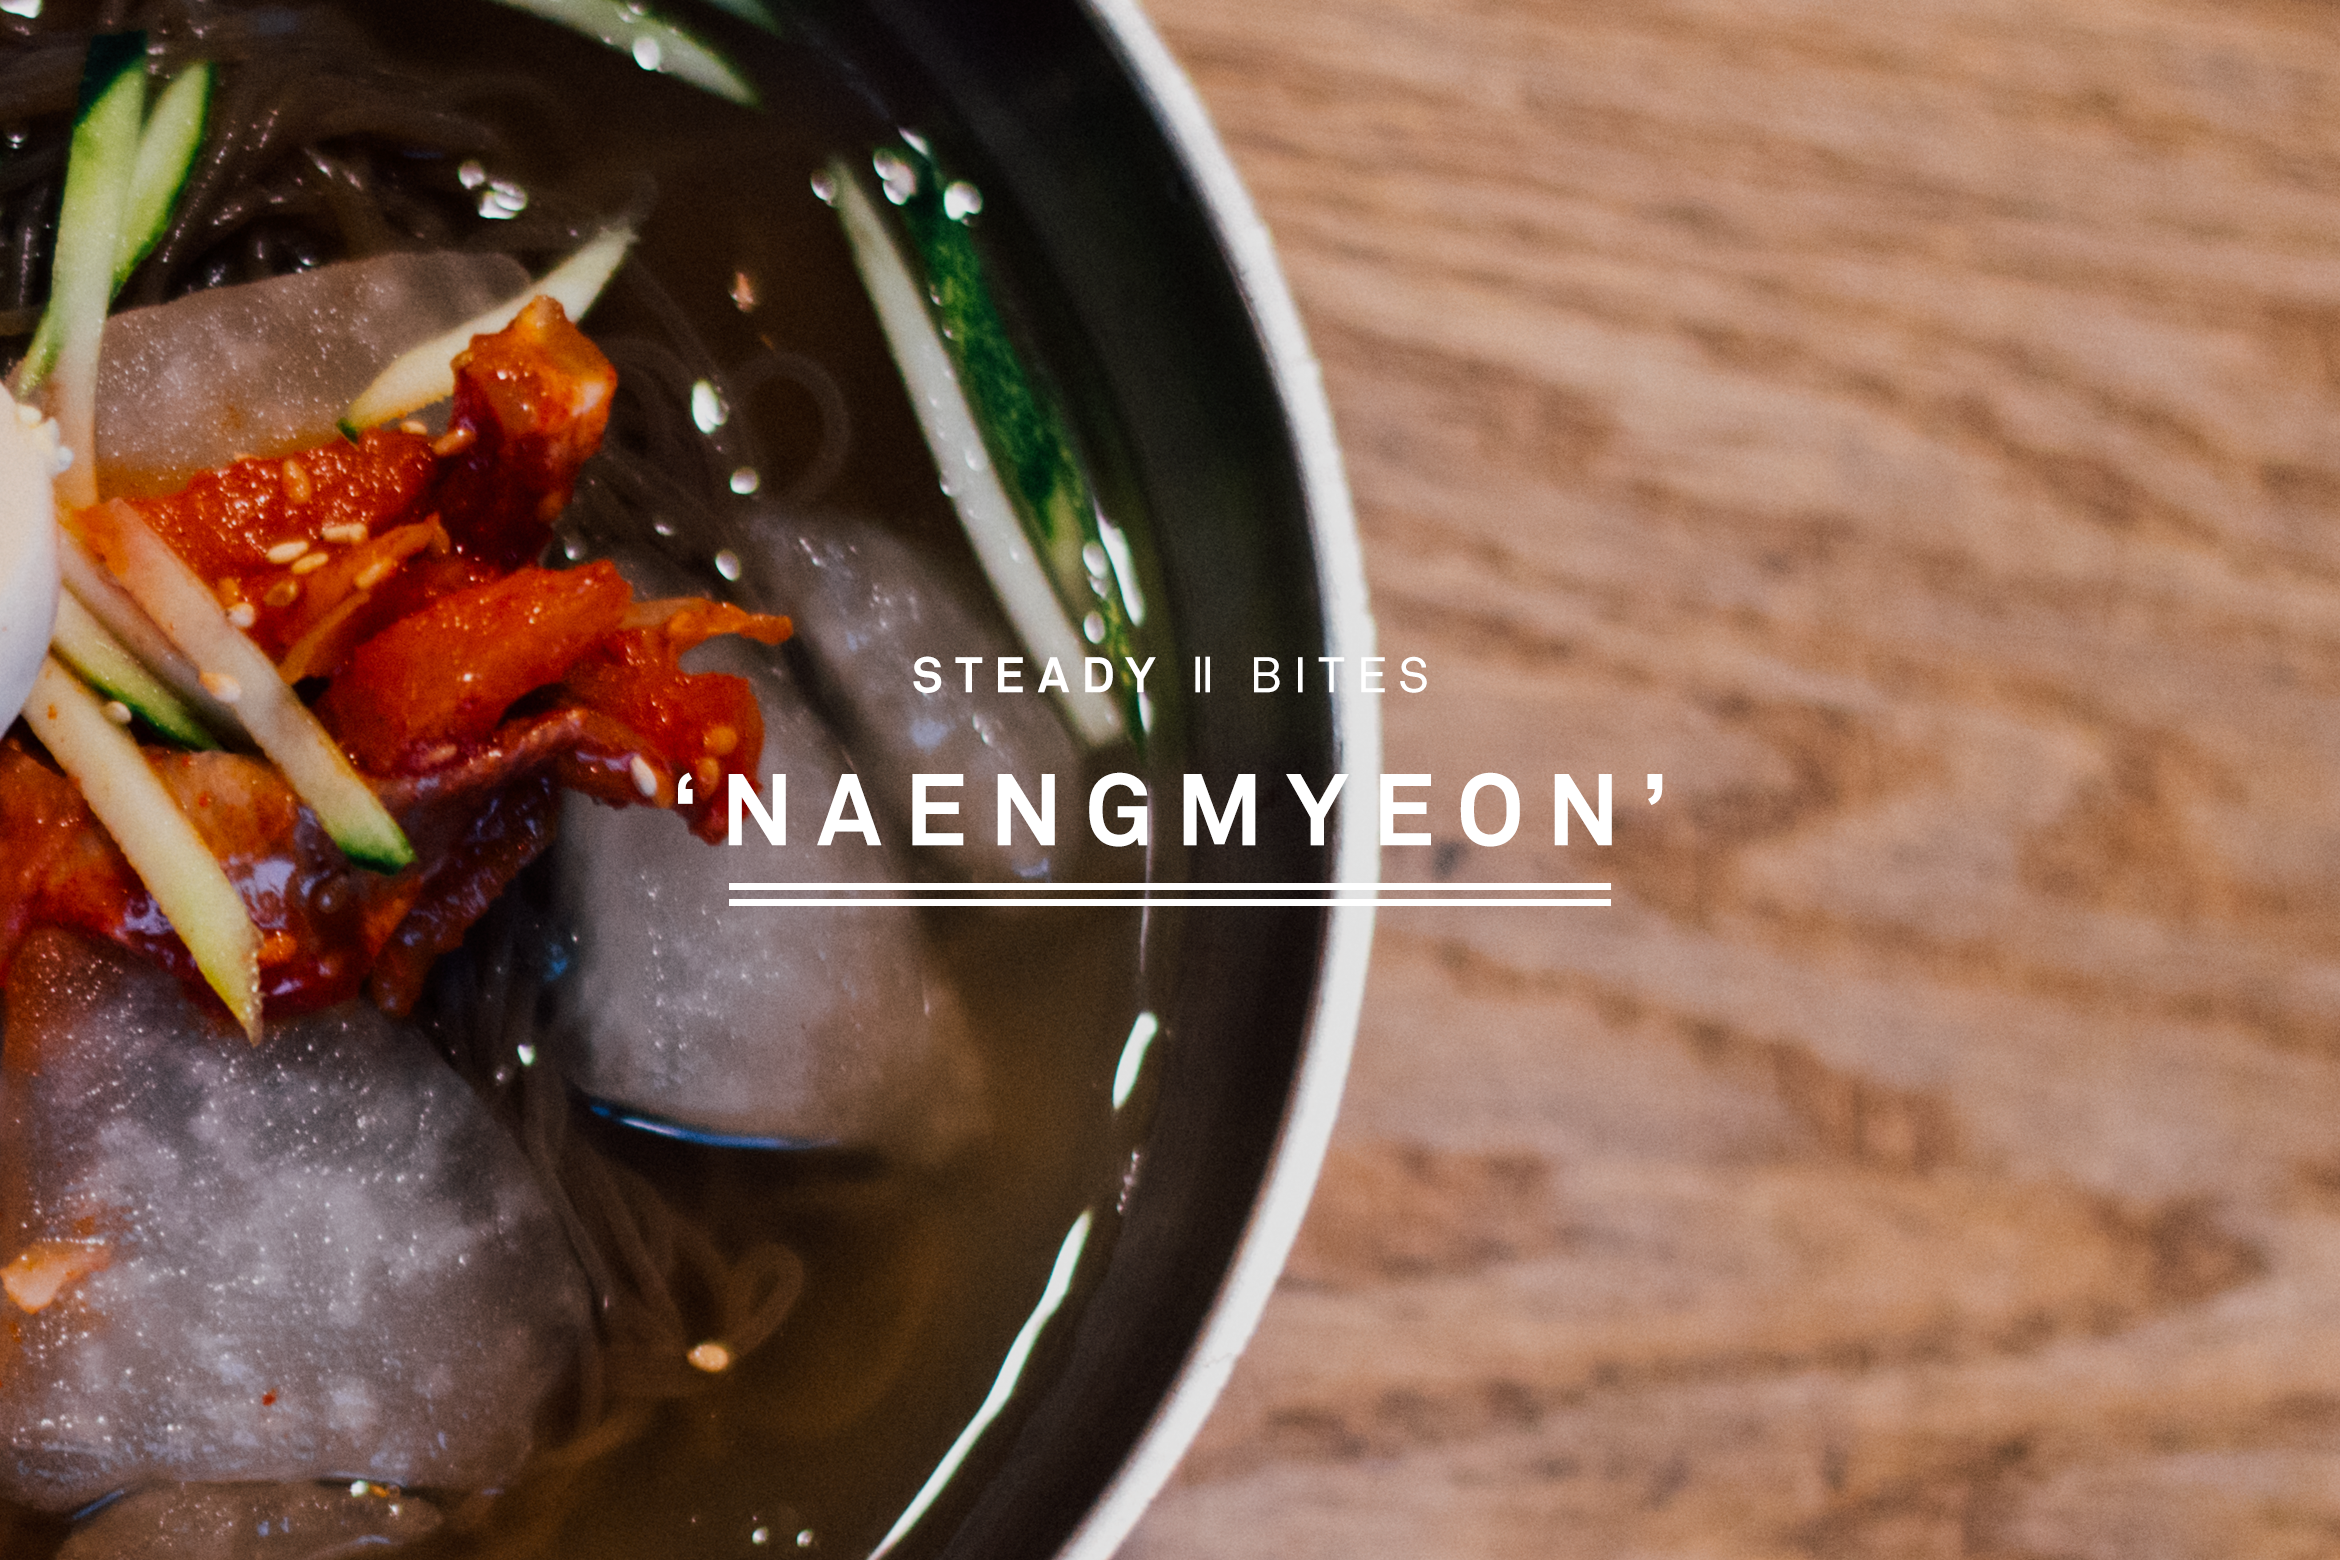 STEADY BITES: NAENGMYEON